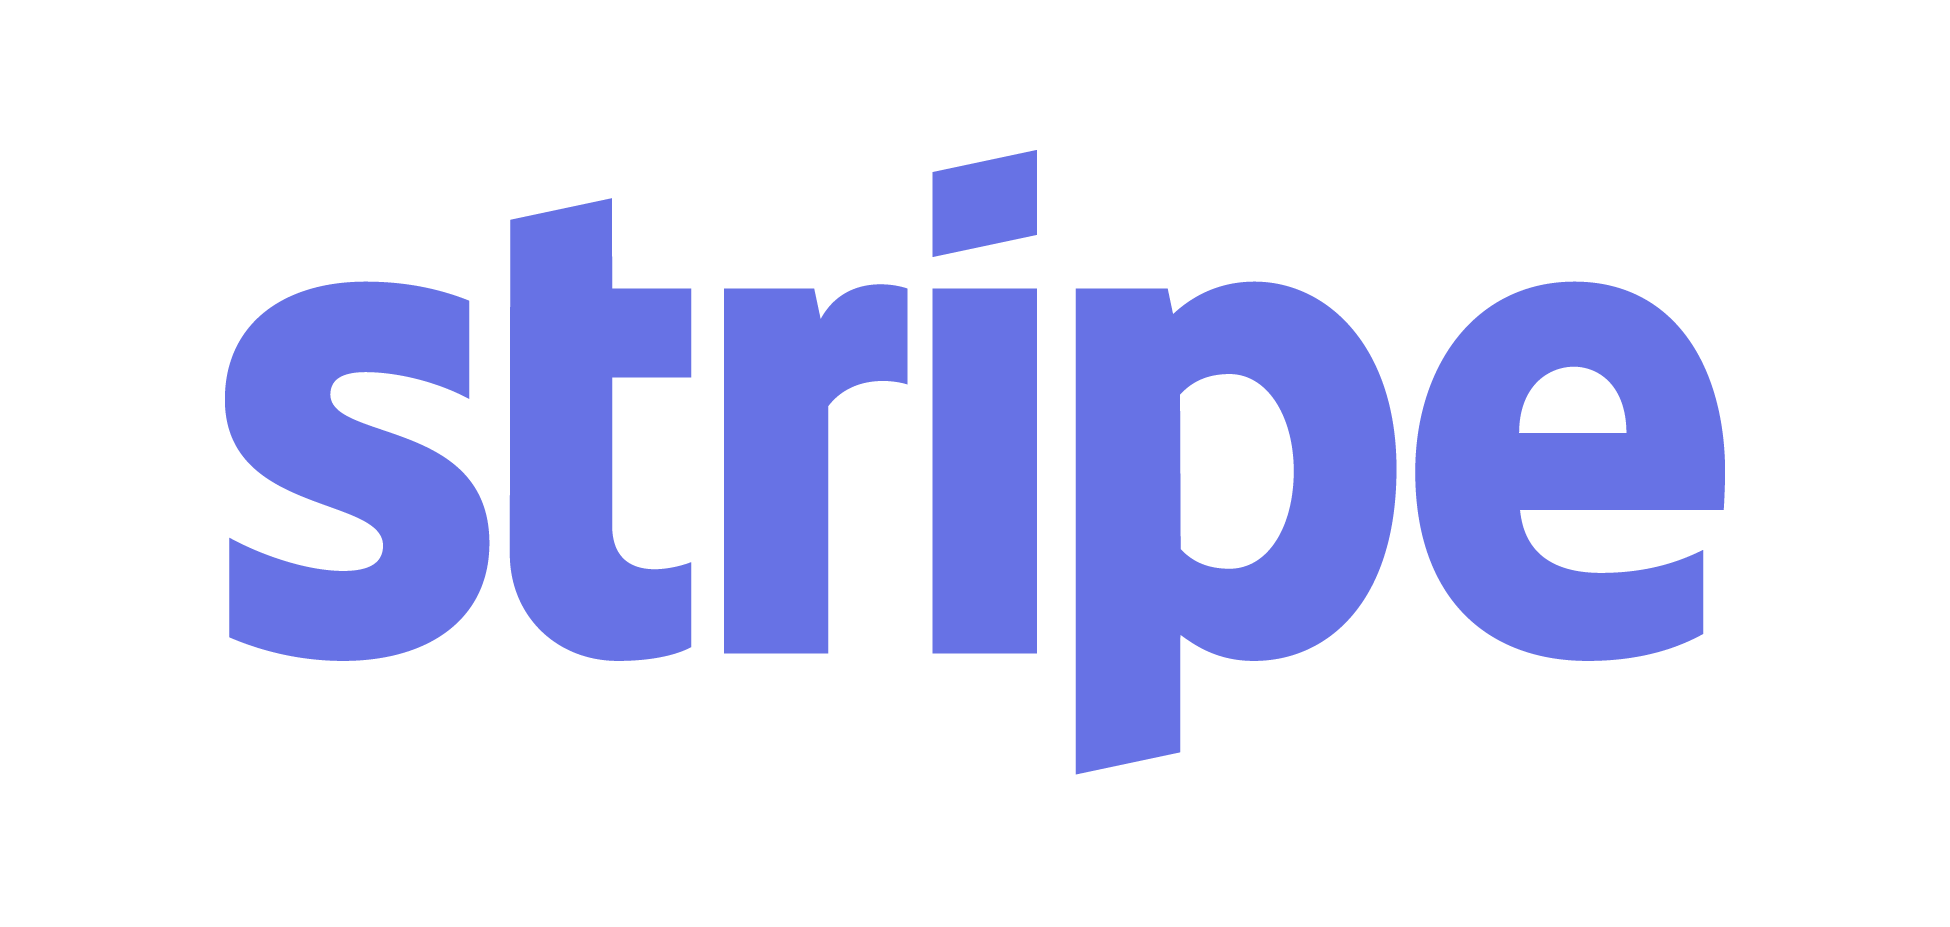 Pay registration fees securely with Stripe